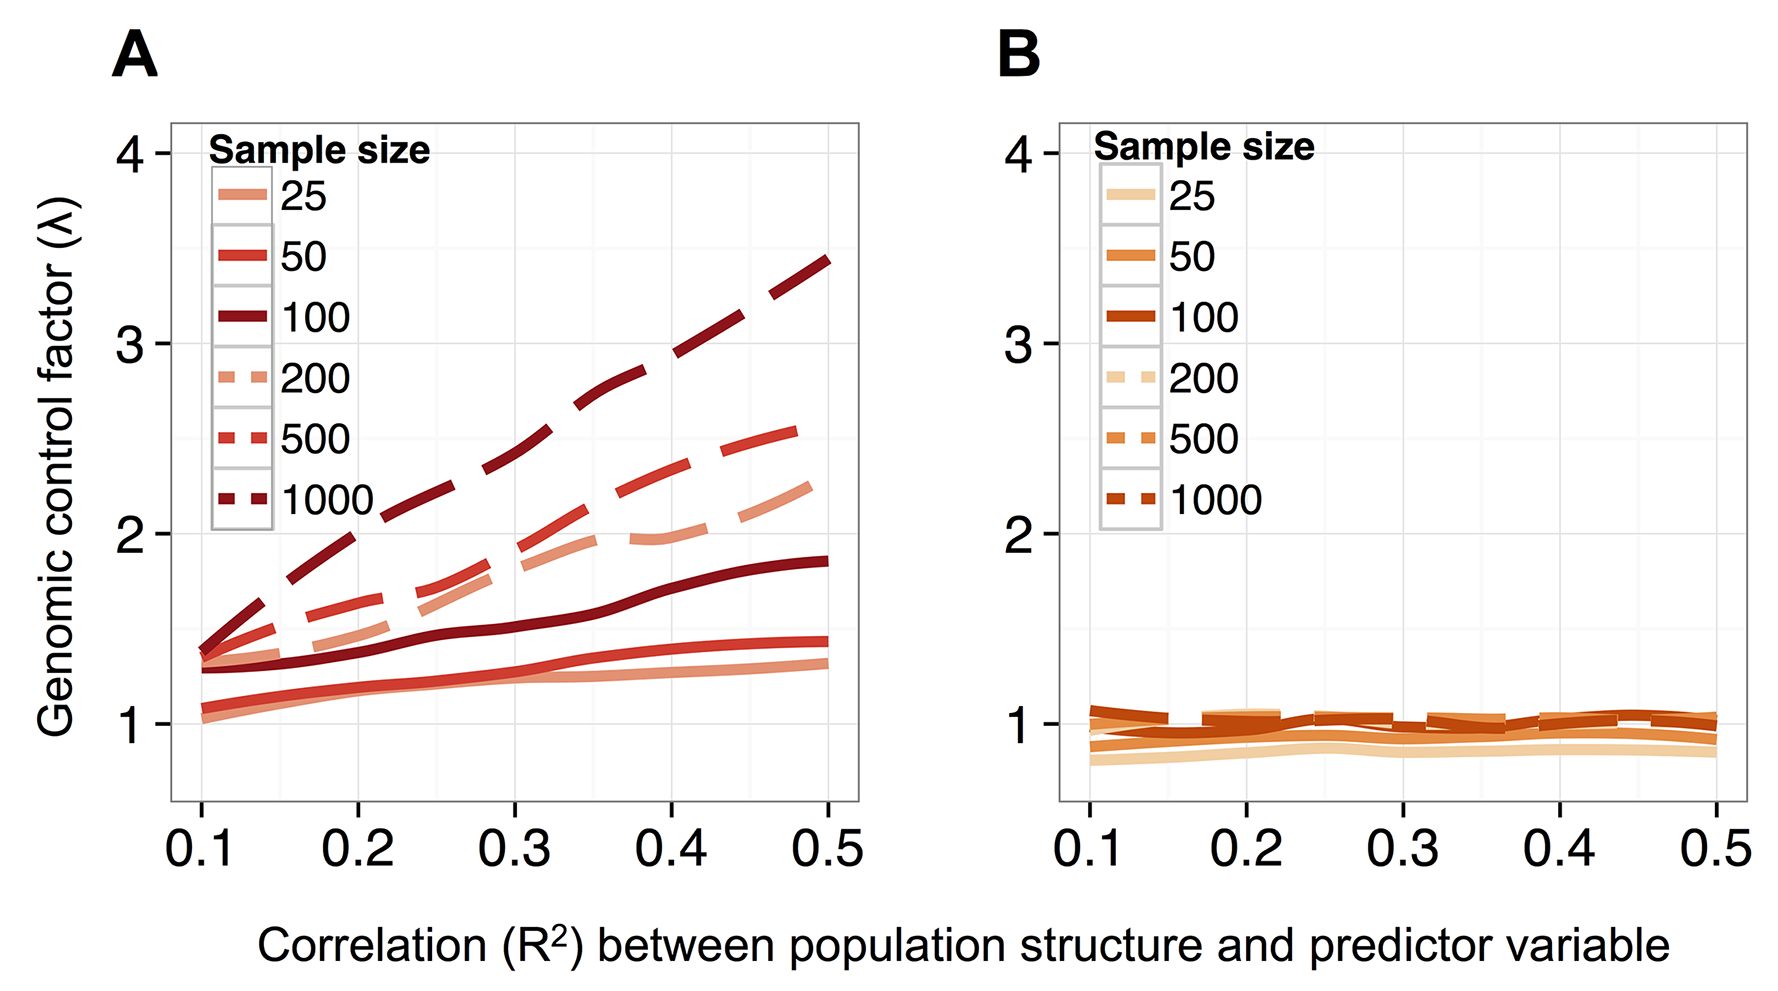 MACAU controls for genetic covariance in data sets that span a range of sample sizes and levels of correlation between population structure and a predictor variable of interest.